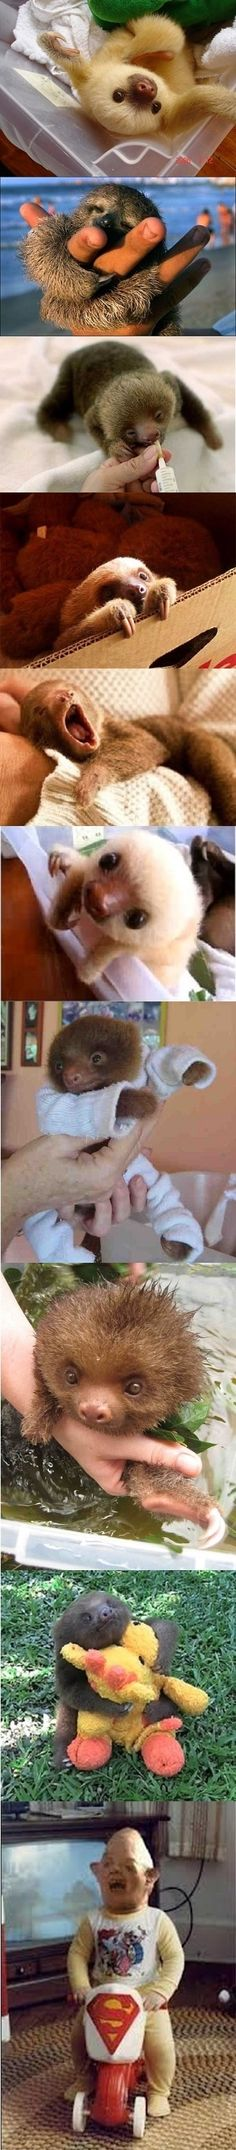 Baby Sloths...I think I laughed at this end of this just a little too much!